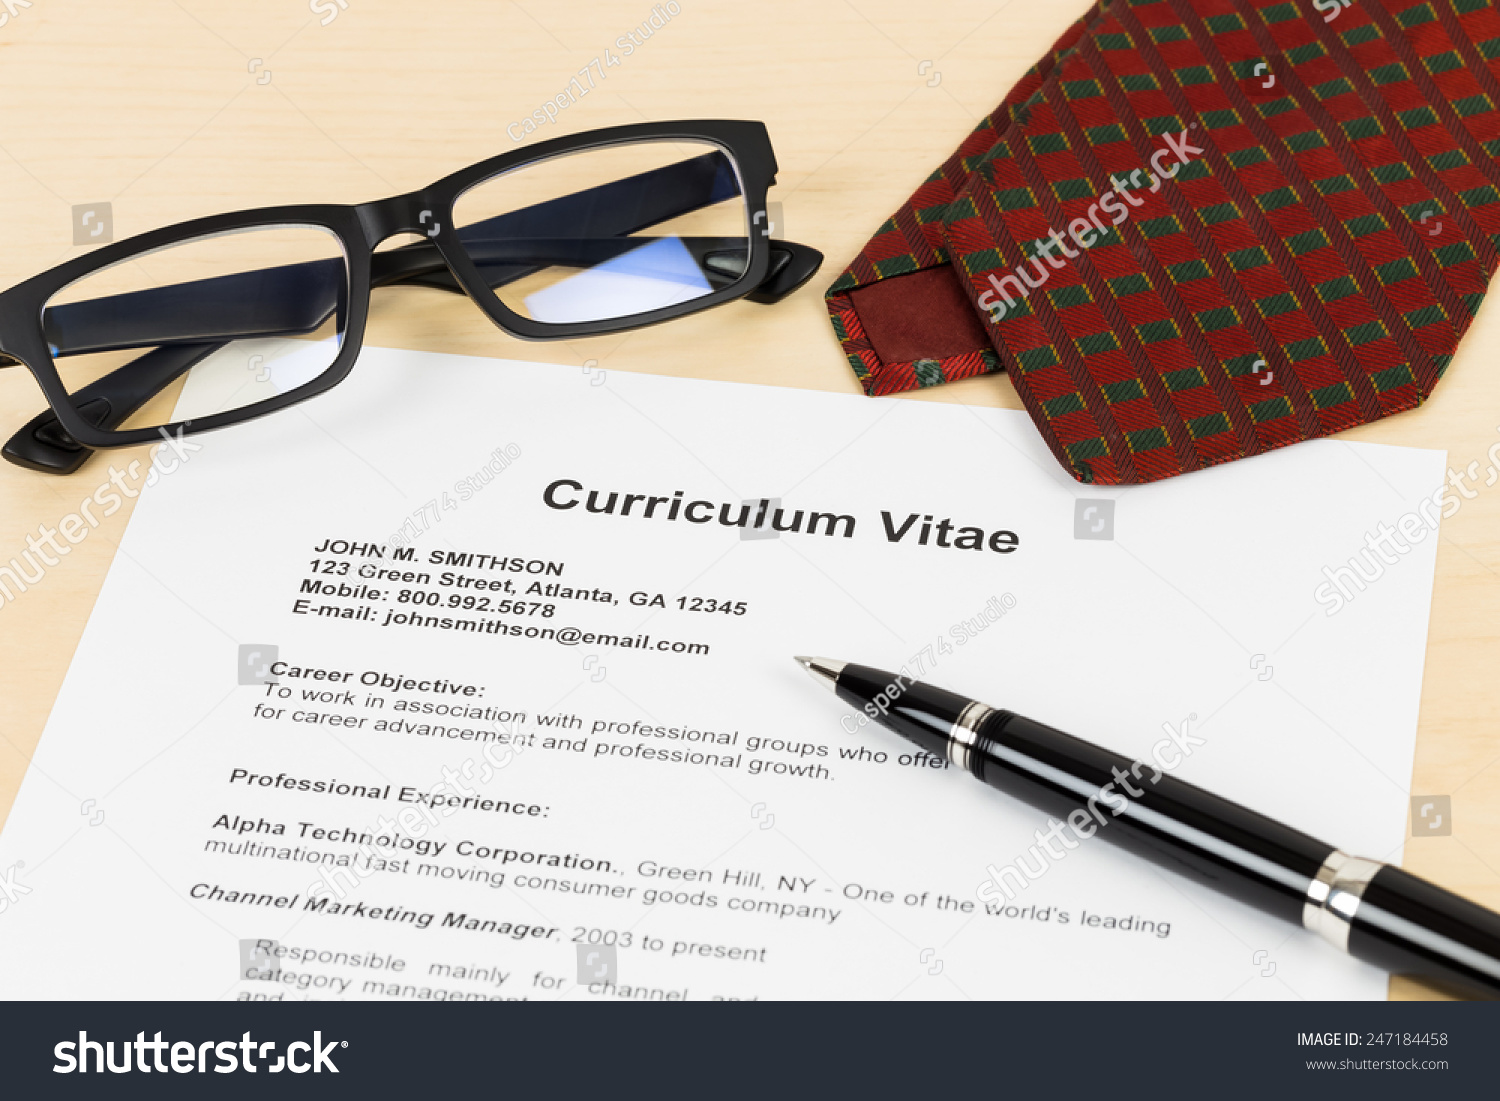 Curriculum Vitae CV Pen Glasses Neck Stock Photo (Royalty Free ...